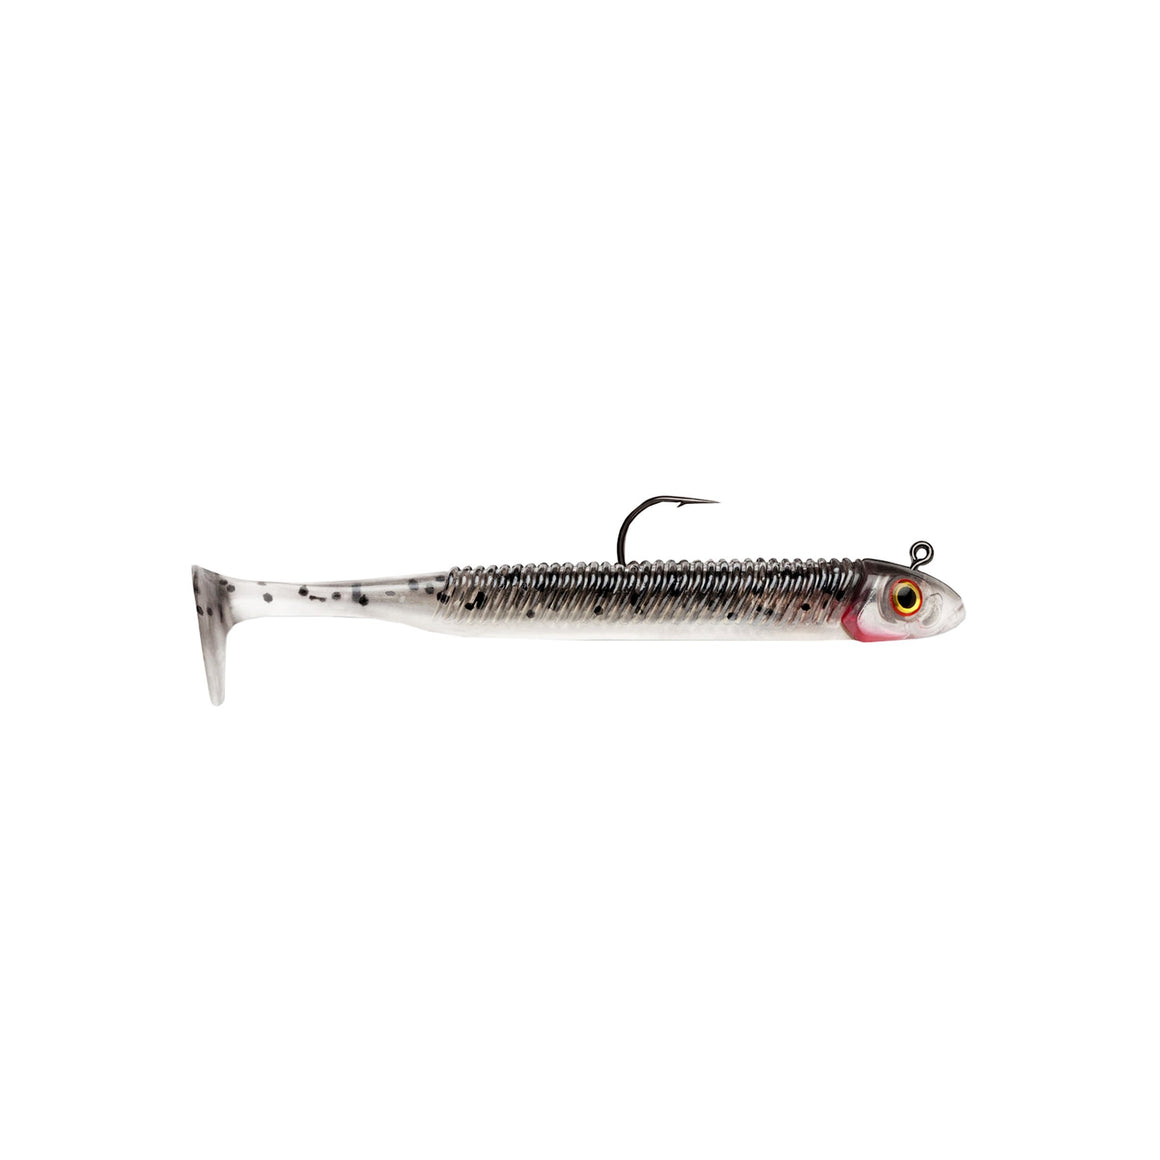 "Storm 360GT Searchbait Lure 4 1/2"" Length, 1/4 oz Weight, Smokin' Ghost"